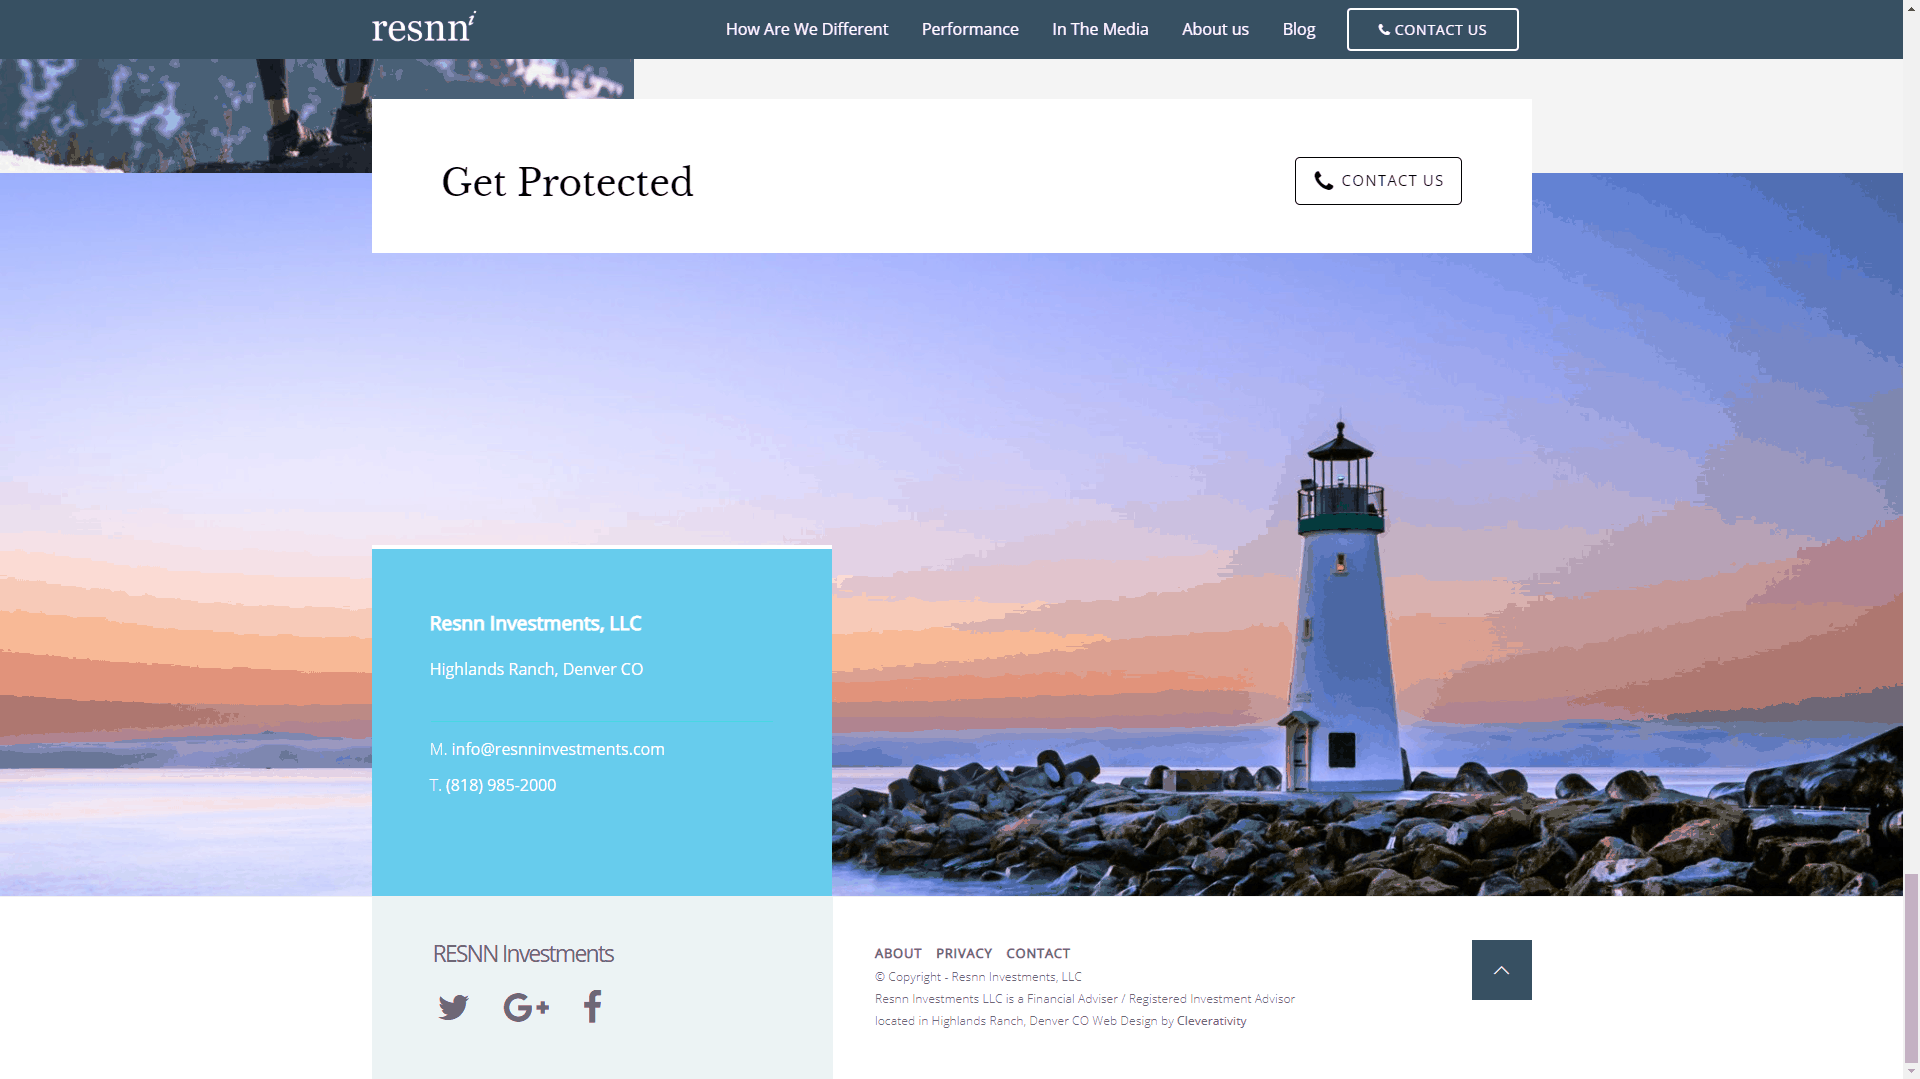 RESNN Investments - Corporate Website Design - Cleverativity - Homepage